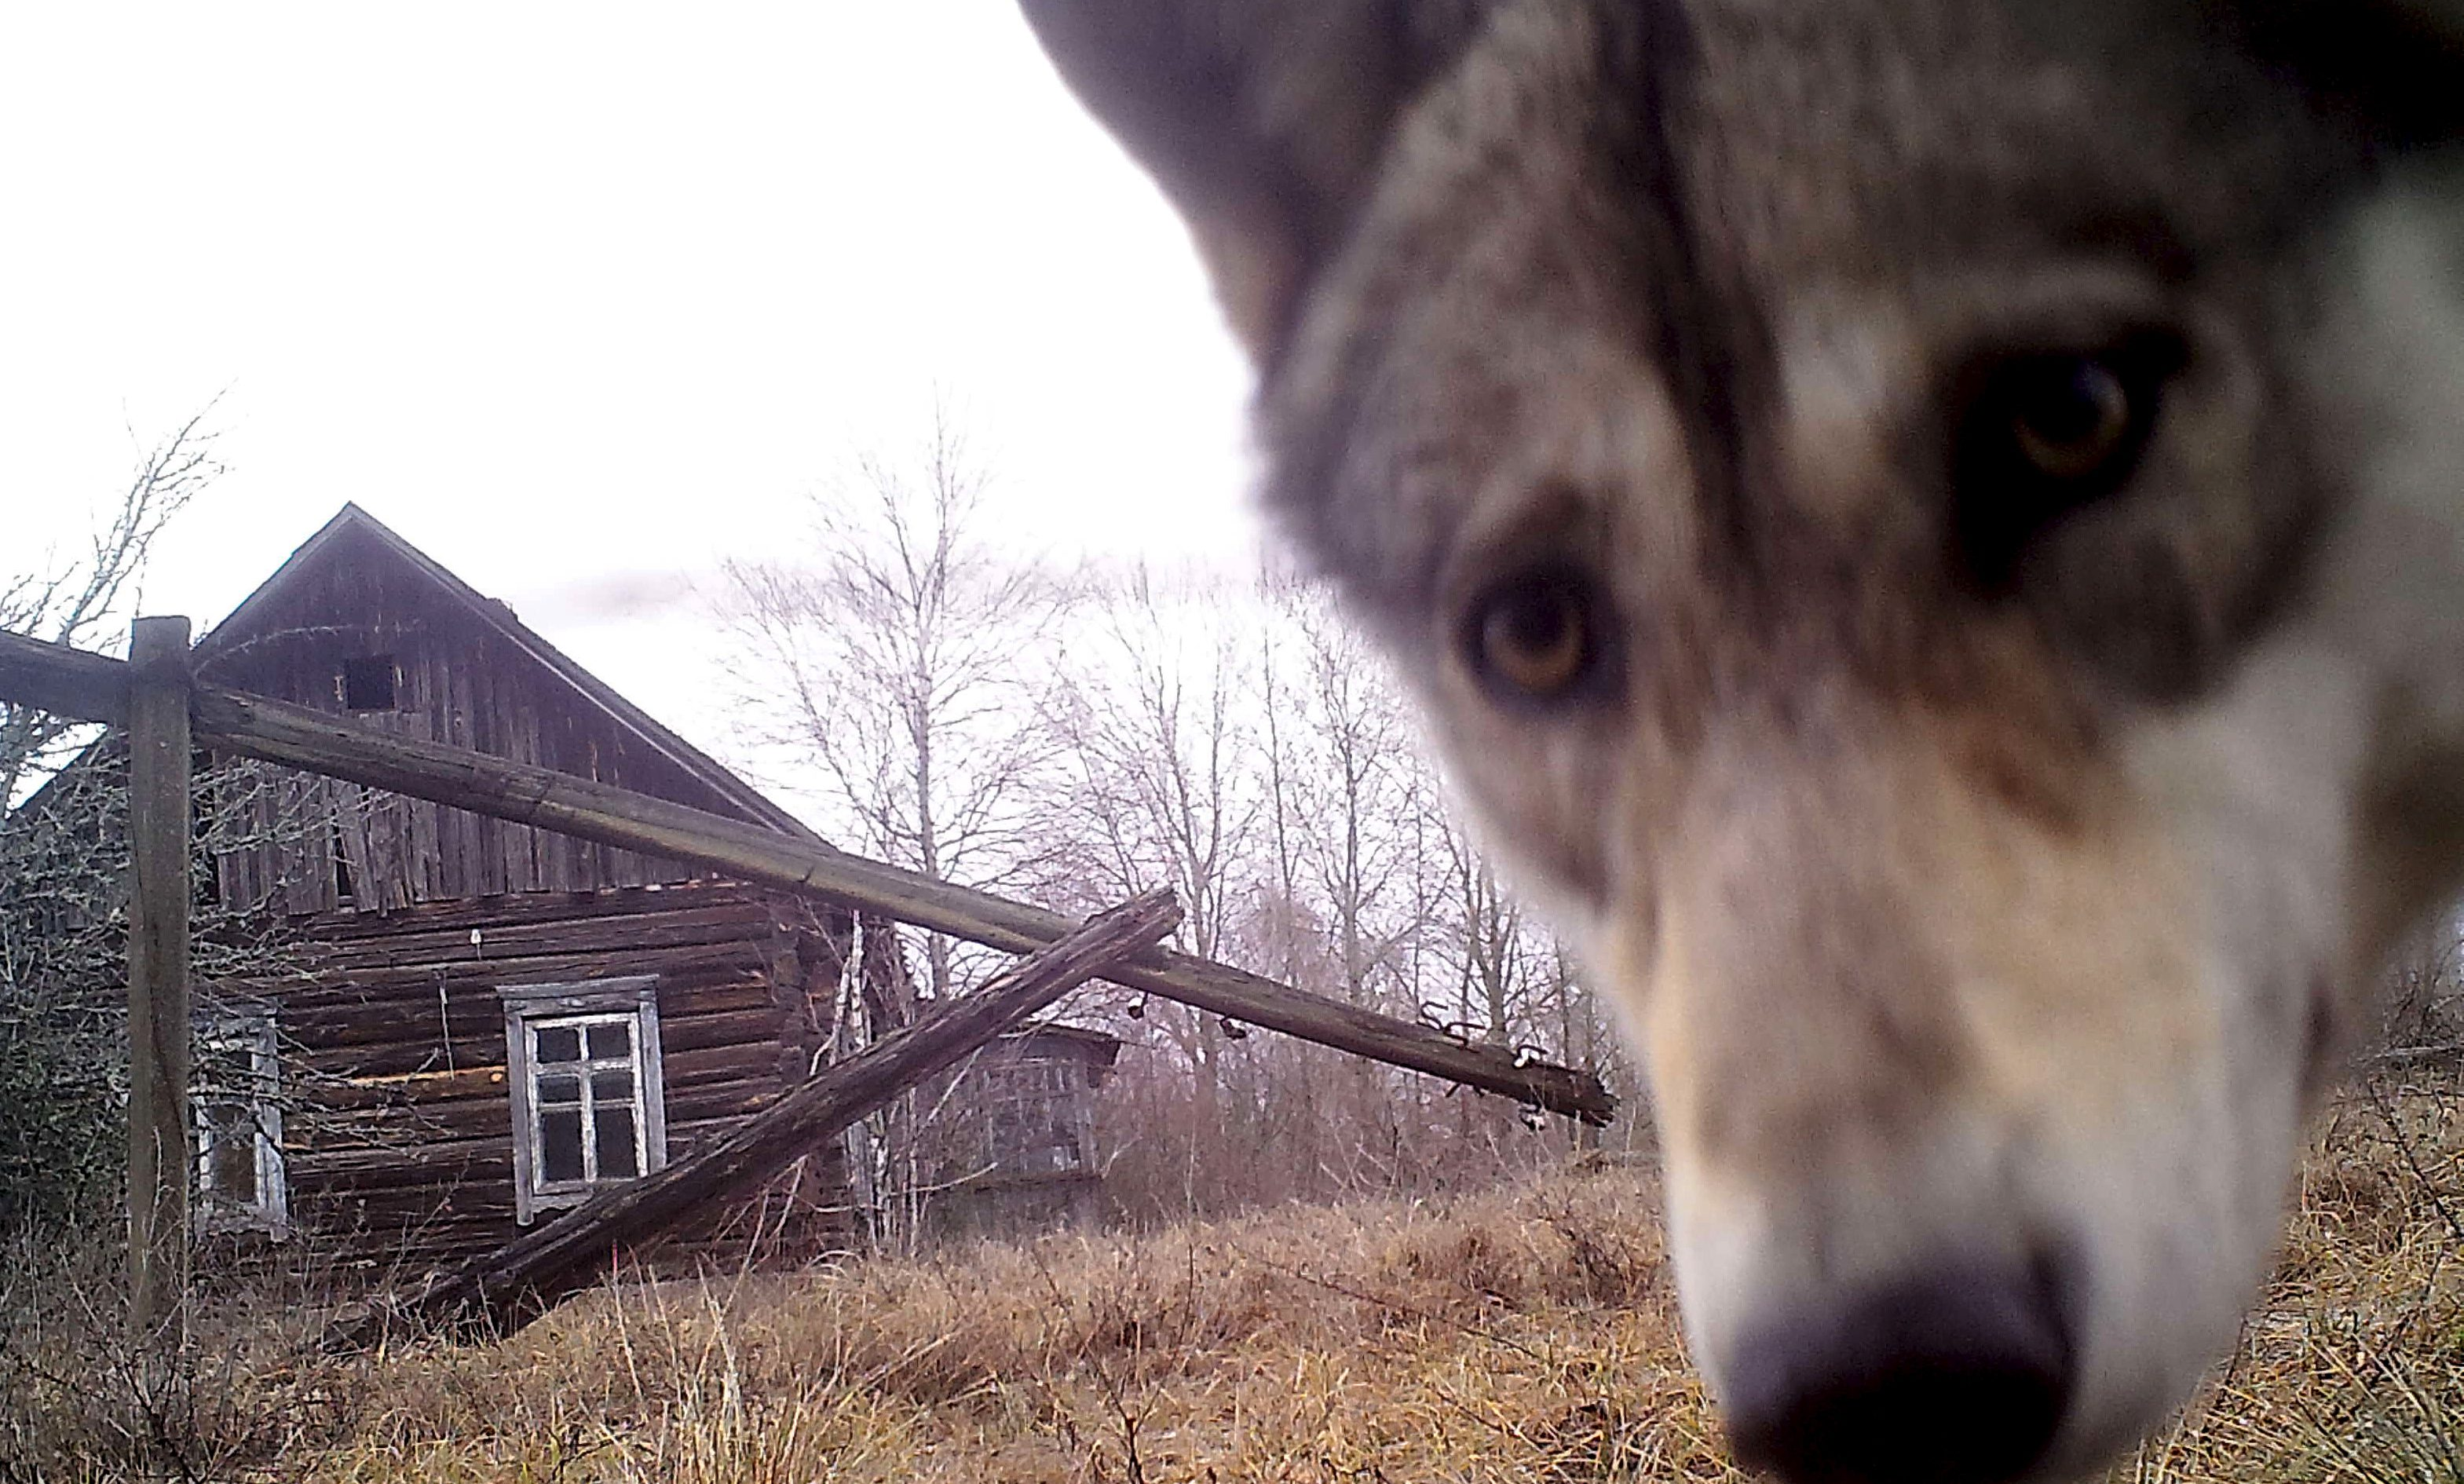 """A wolf looks into the camera at the 30 km (19 miles) exclusion zone around the Chernobyl nuclear reactor in the abandoned village of Orevichi, Belarus, March 2, 2016. What happens to the environment when humans disappear? Thirty years after the Chernobyl nuclear disaster, booming populations of wolf, elk and other wildlife in the vast contaminated zone in Belarus and Ukraine provide a clue. On April 26, 1986, a botched test at the nuclear plant in Ukraine, then a Soviet republic, sent clouds of smouldering radioactive material across large swathes of Europe. Over 100,000 people had to abandon the area permanently, leaving native animals the sole occupants of a cross-border """"exclusion zone"""" roughly the size of Luxembourg. Photo taken with trail camera.  REUTERS/Vasily Fedosenko   SEARCH """"WILD CHERNOBYL"""" FOR THIS STORY. SEARCH """"THE WIDER IMAGE"""" FOR ALL STORIES   TPX IMAGES OF THE DAY - GF10000372384"""